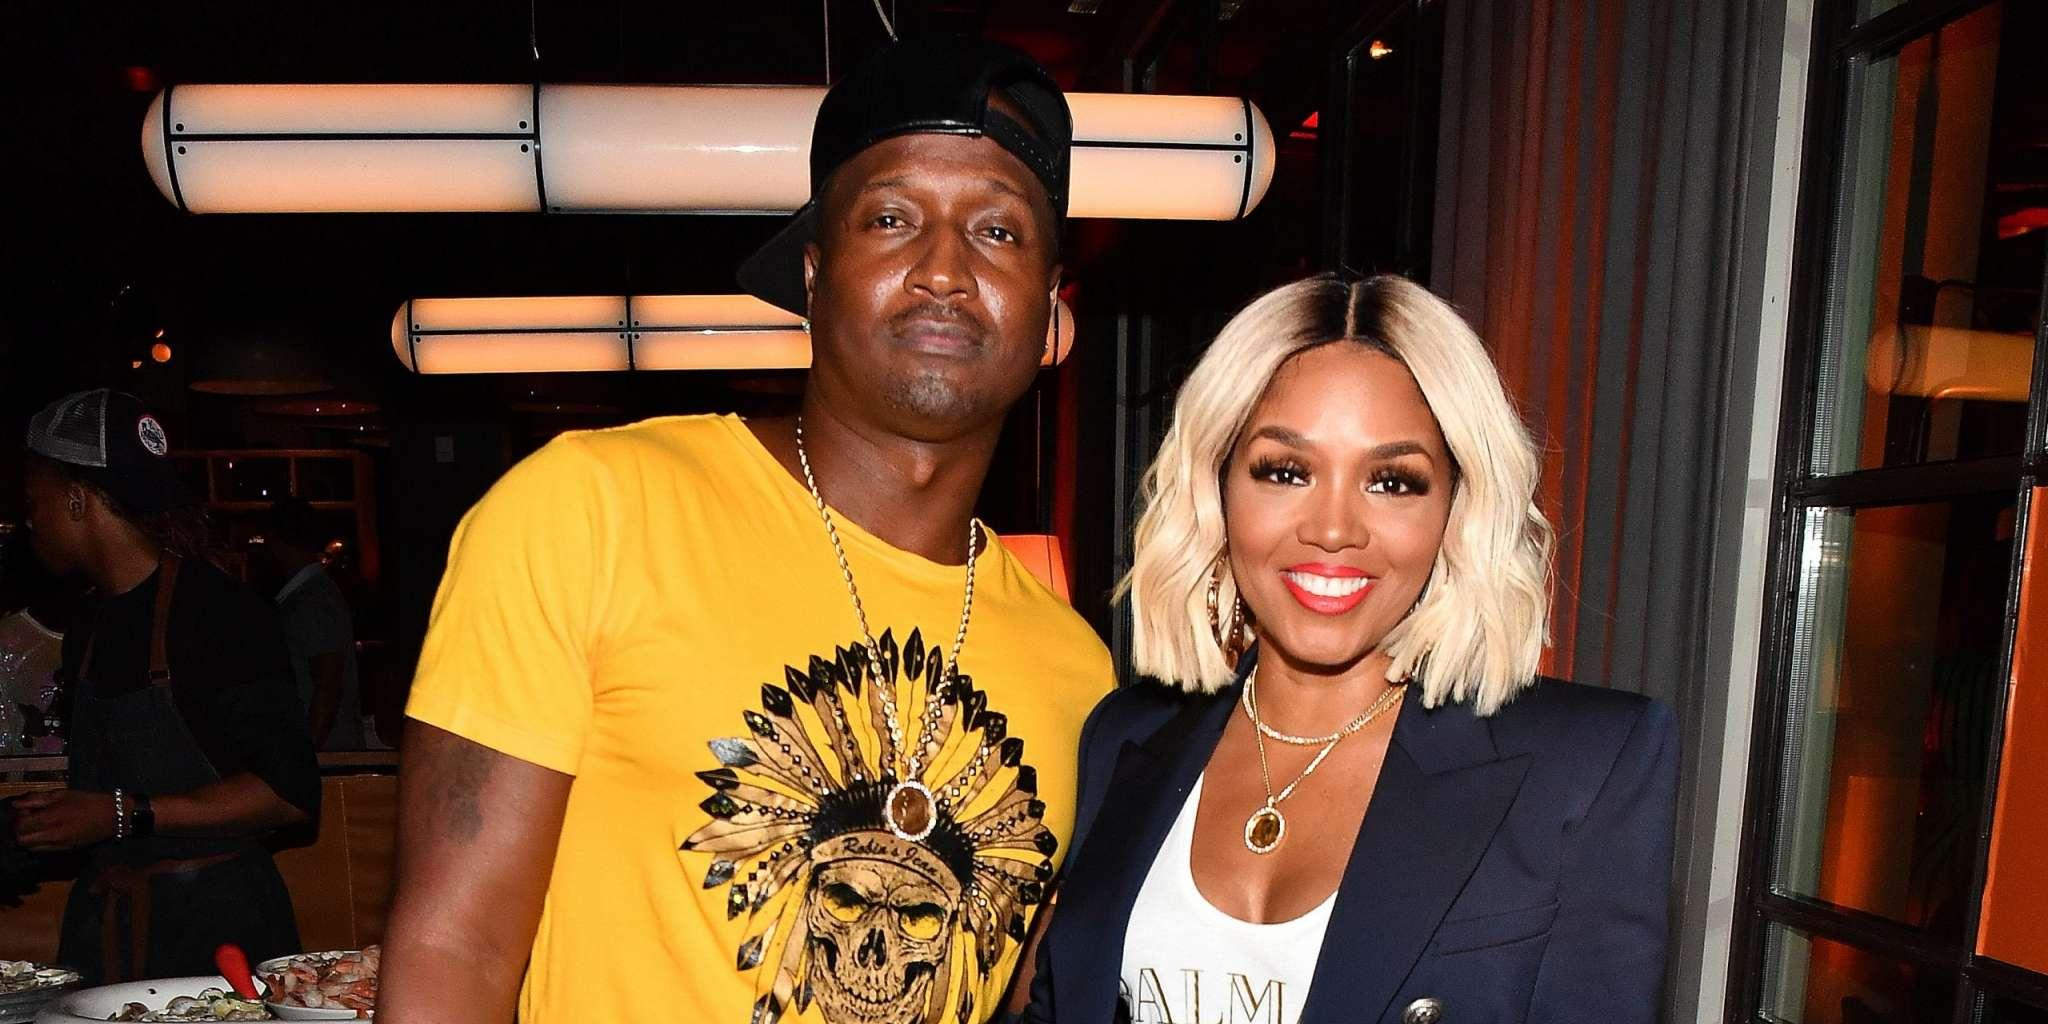 Rasheeda Frost Gushes Over Kirk Frost In This IG Post - See The Couple's Photo Together